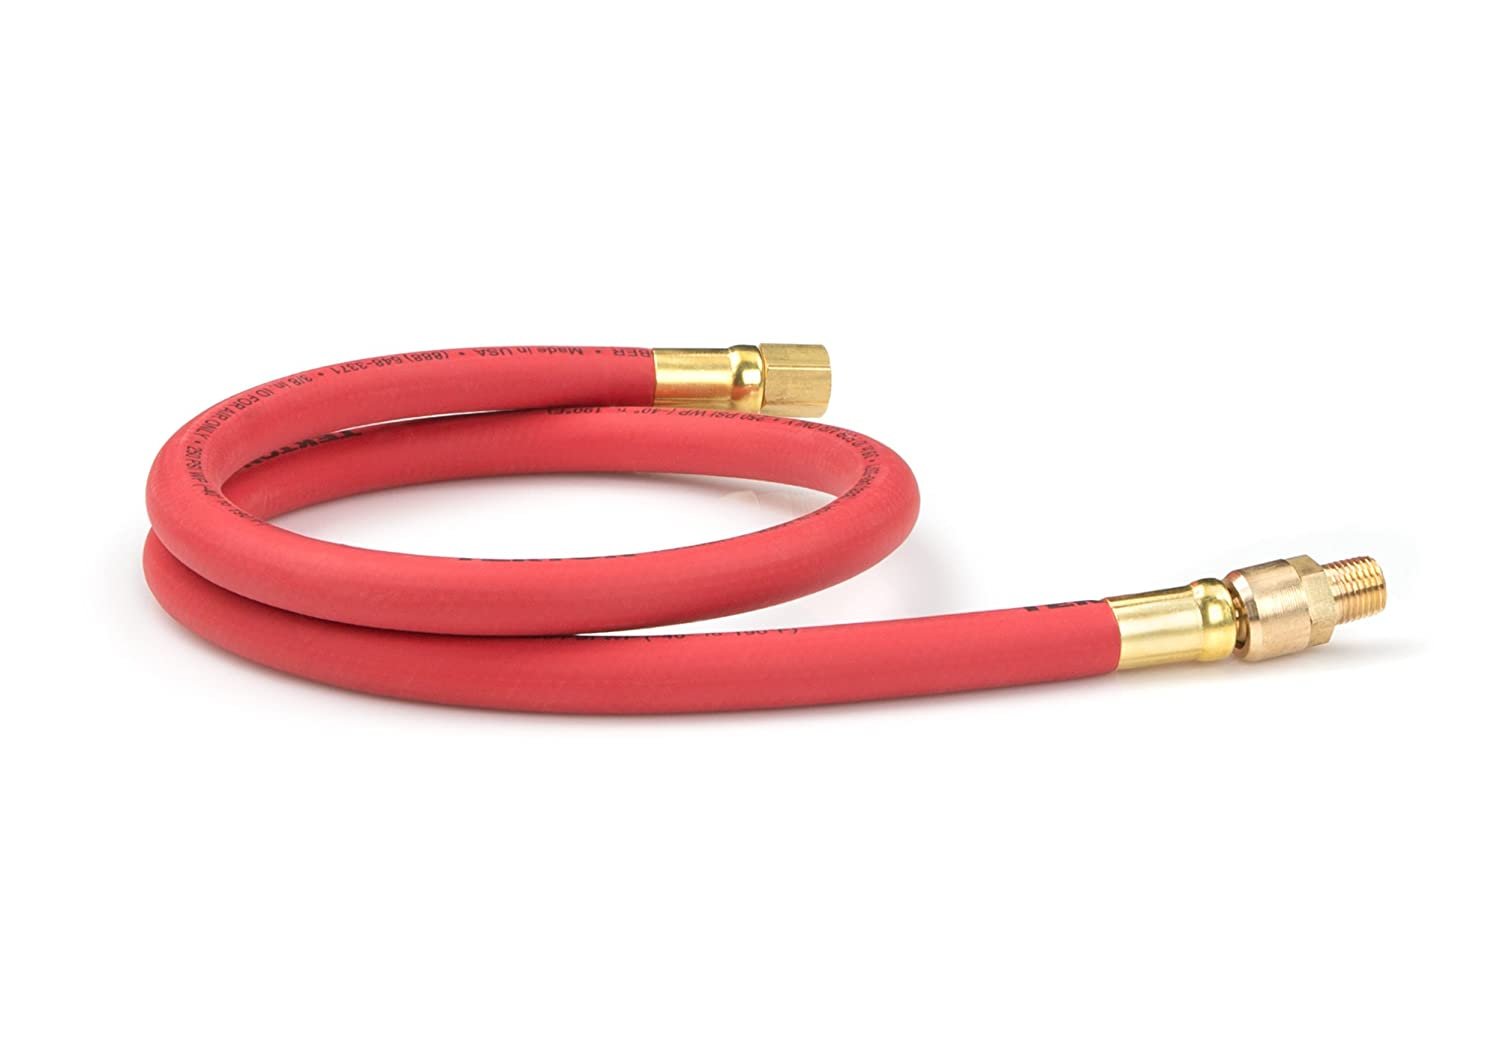 TEKTON 46347 3/8-Inch I.D. by 3-Foot 250 PSI Rubber Whip Air Hose with 1/4-Inch MPT Swivel End